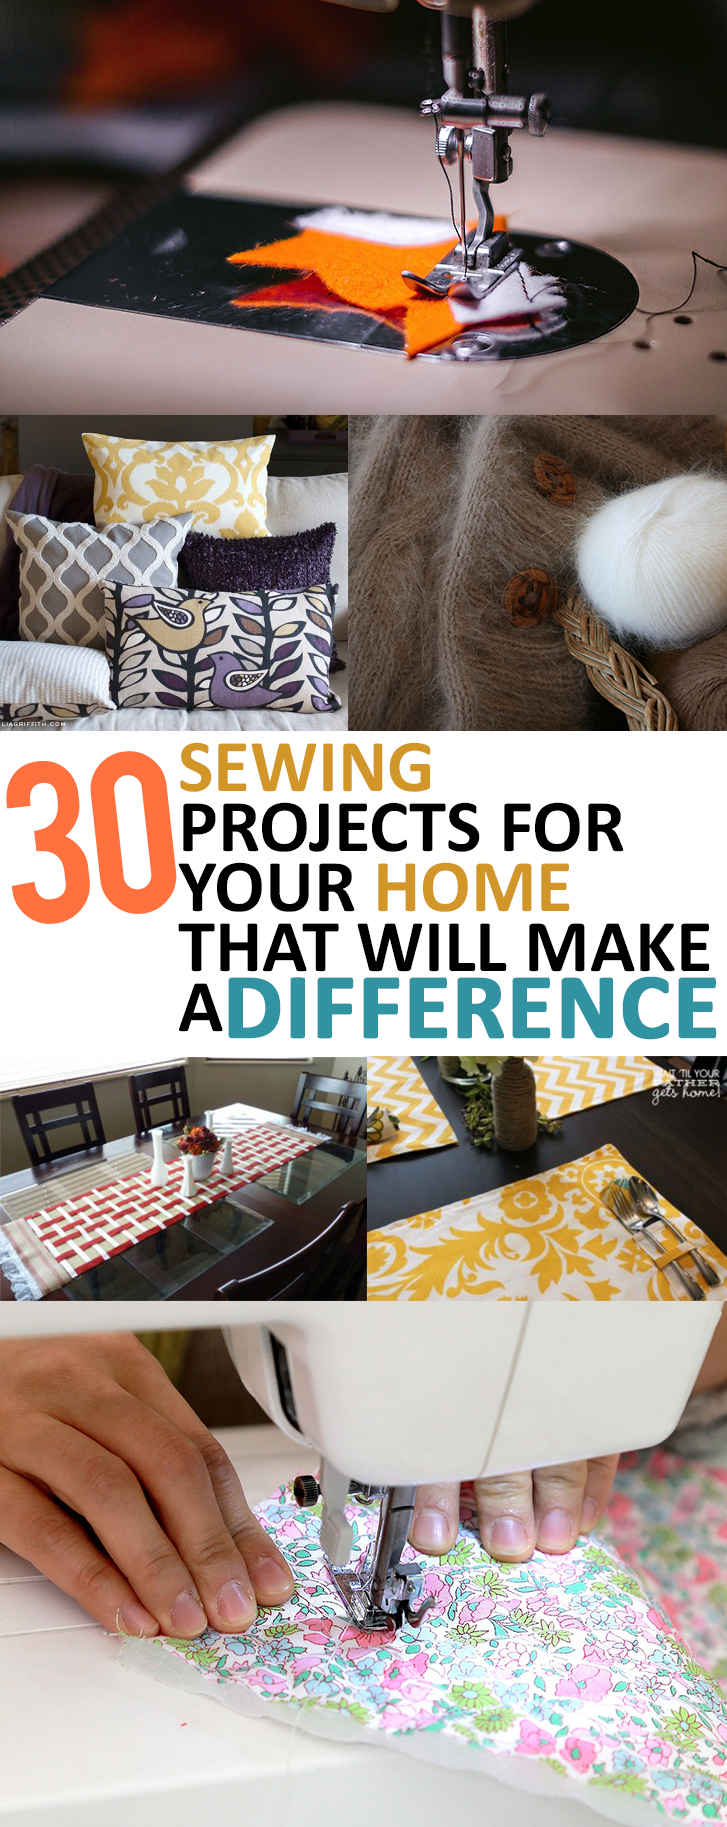 30 Sewing Projects For Your Home That Will Make A